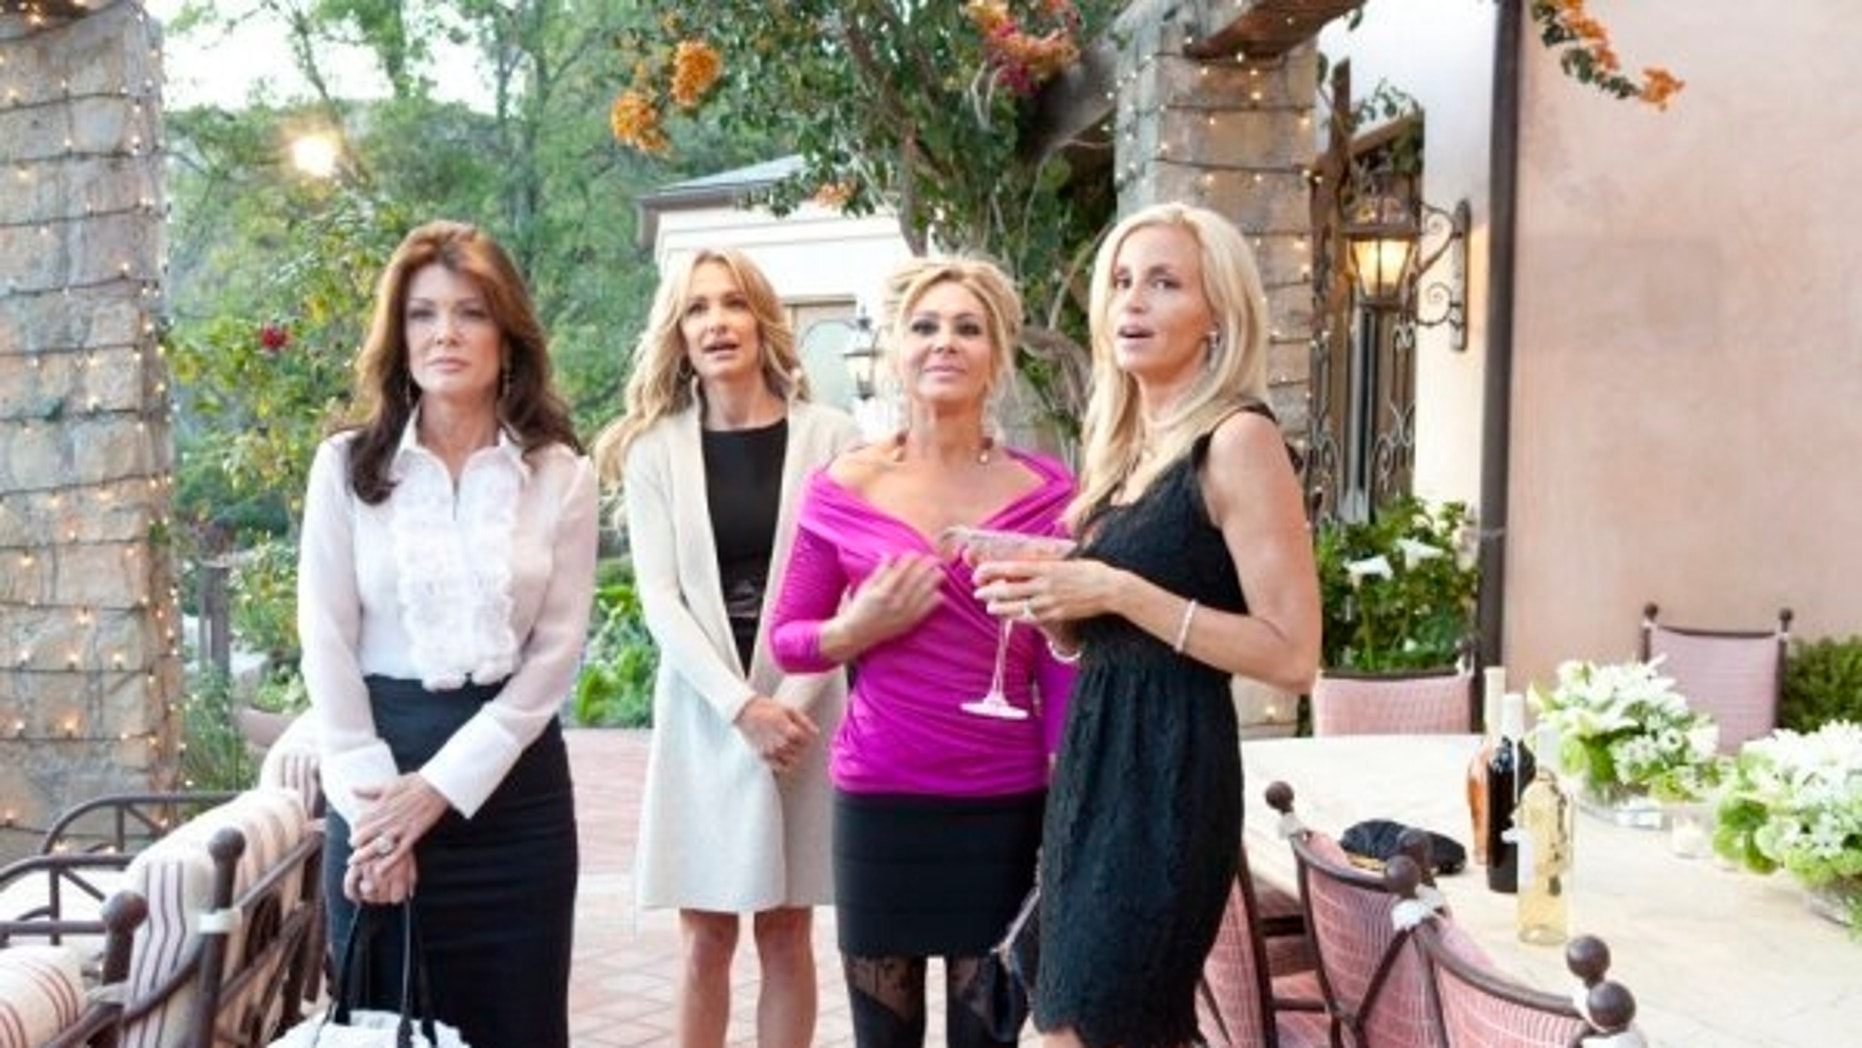 """Real Housewives of Beverly Hills"" cast members (left to right) Lisa Vanderpump, Taylor Armstrong, Adrienne Maloof, Camille Grammer are shown."